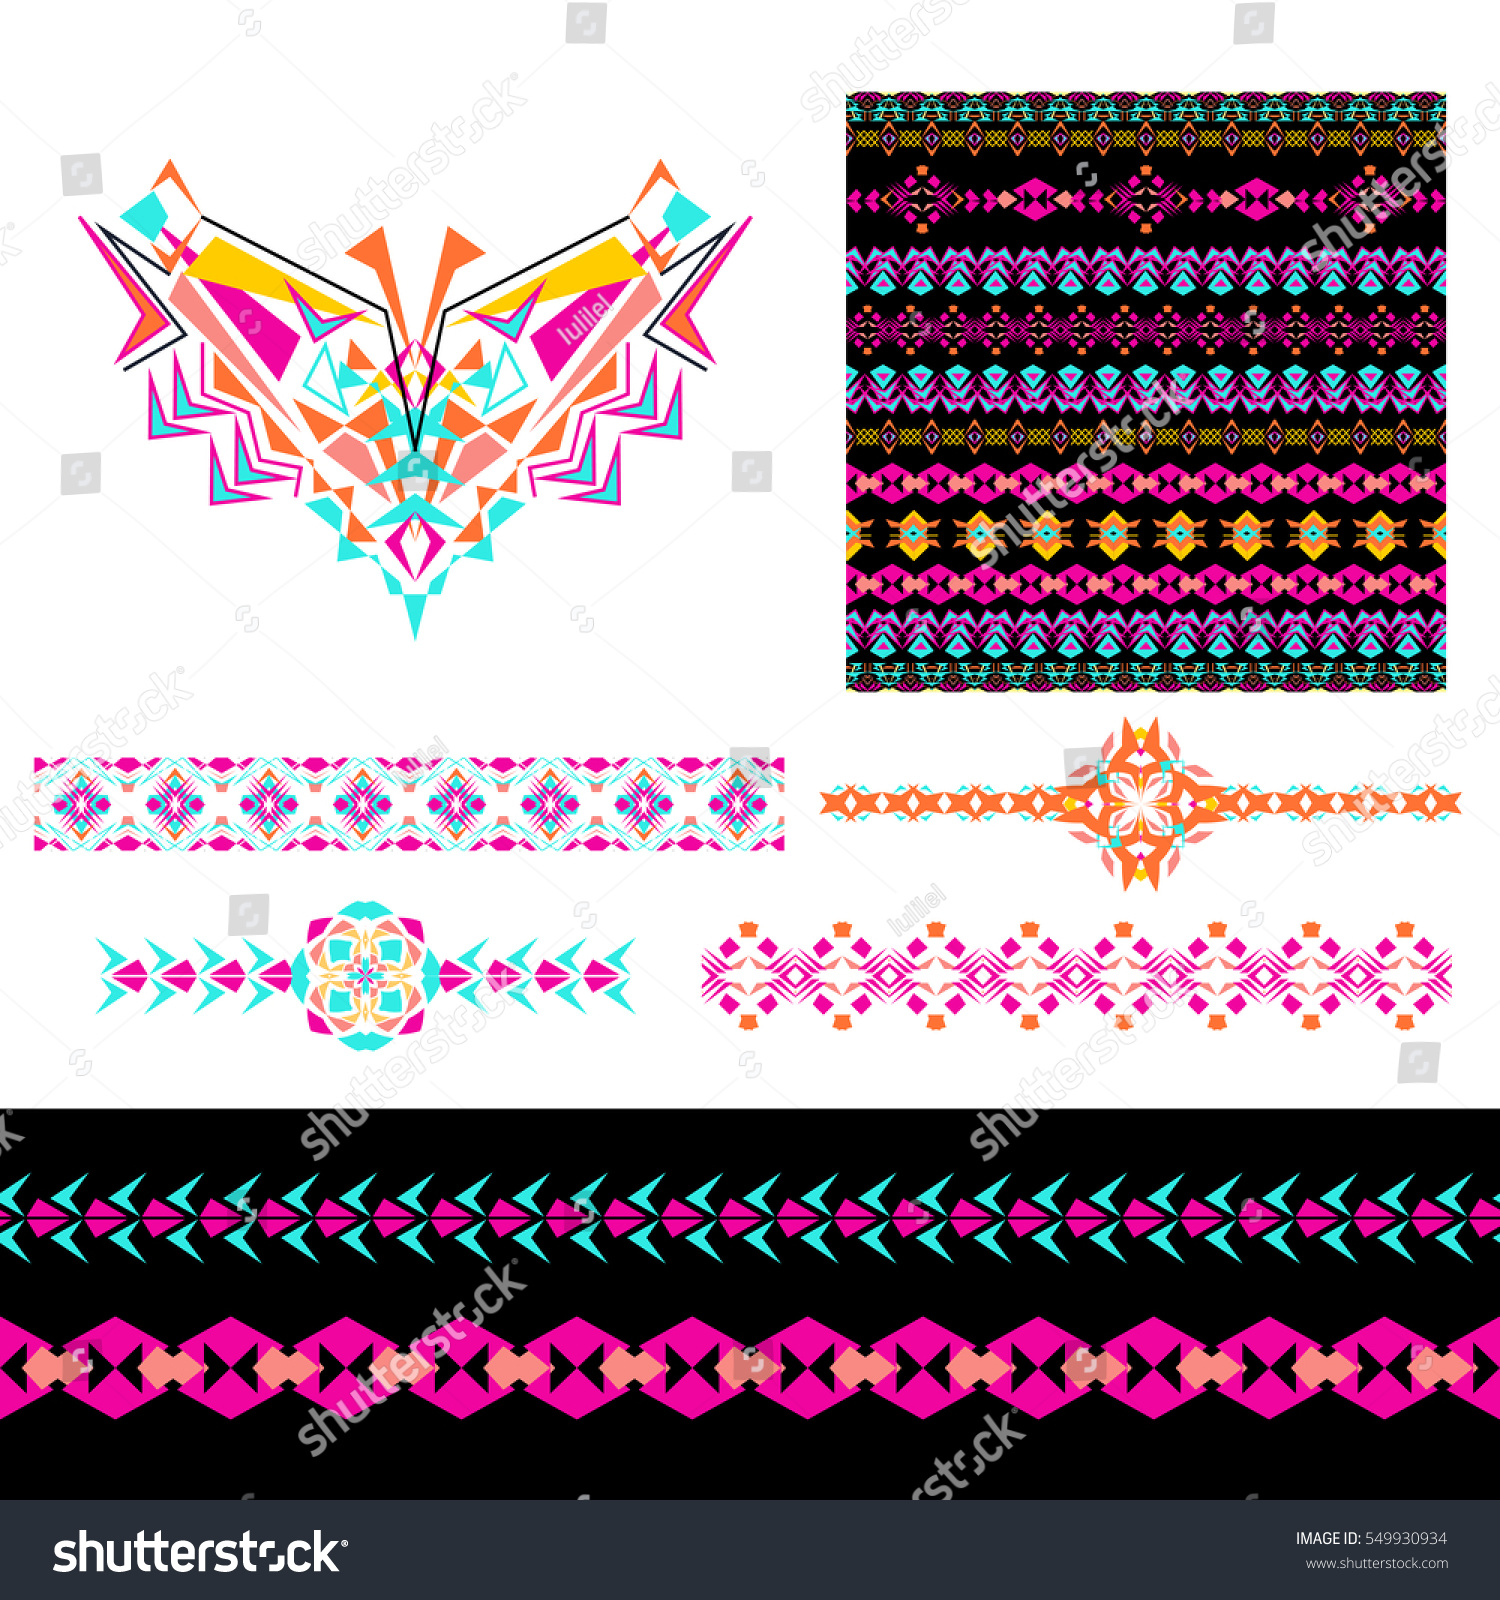 Vector Set Decorative Elements Design Fashion Stock Vector Royalty Free 549930934